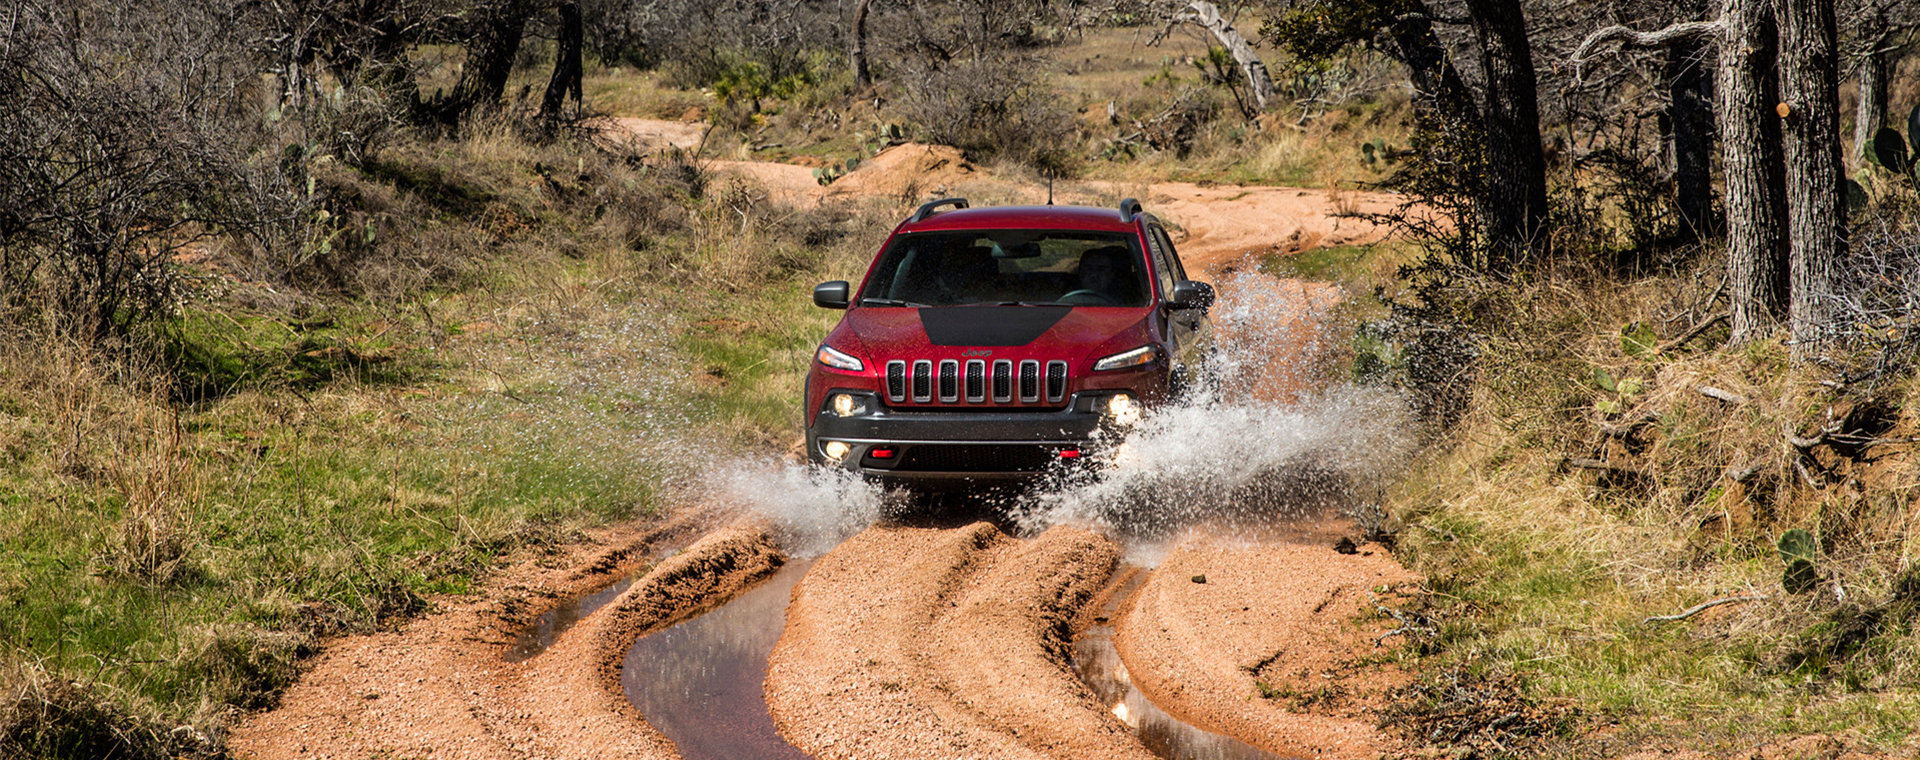 New Cherokee inventory at Quirk Chrysler Jeep